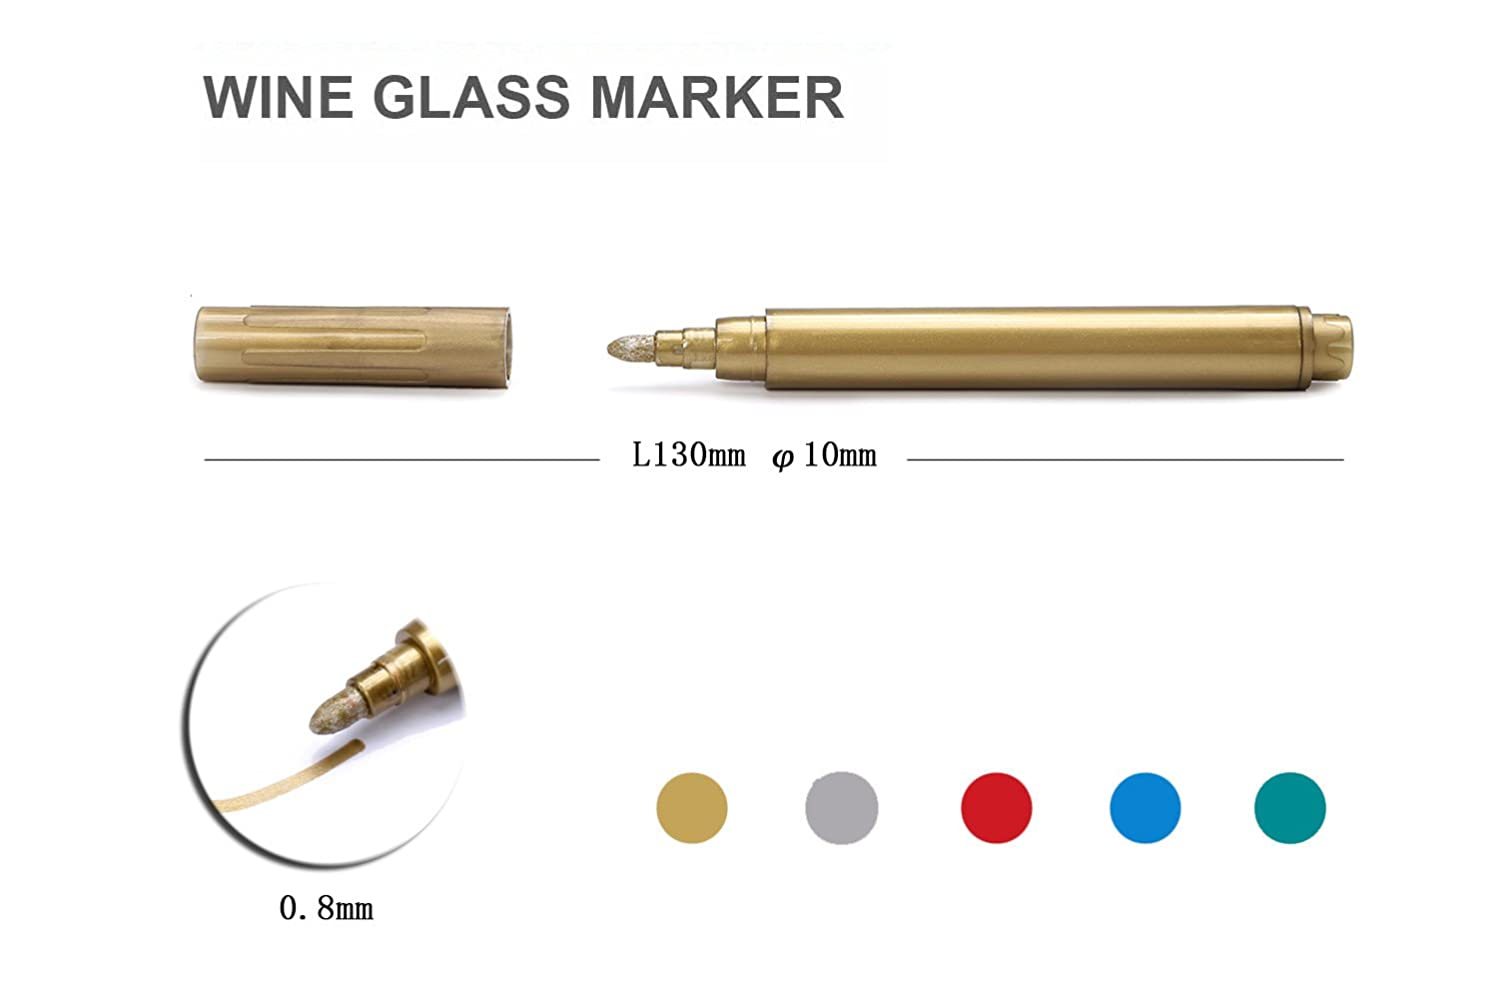 TIENO Wine Glass Marker Metallic Pen Set 0.8 mm Round Tip Creativity Writing on Glass Mirror Ceramics and Etc 5 Packs of Vibrant Colors with Portable Pouch Window Jar Bottle